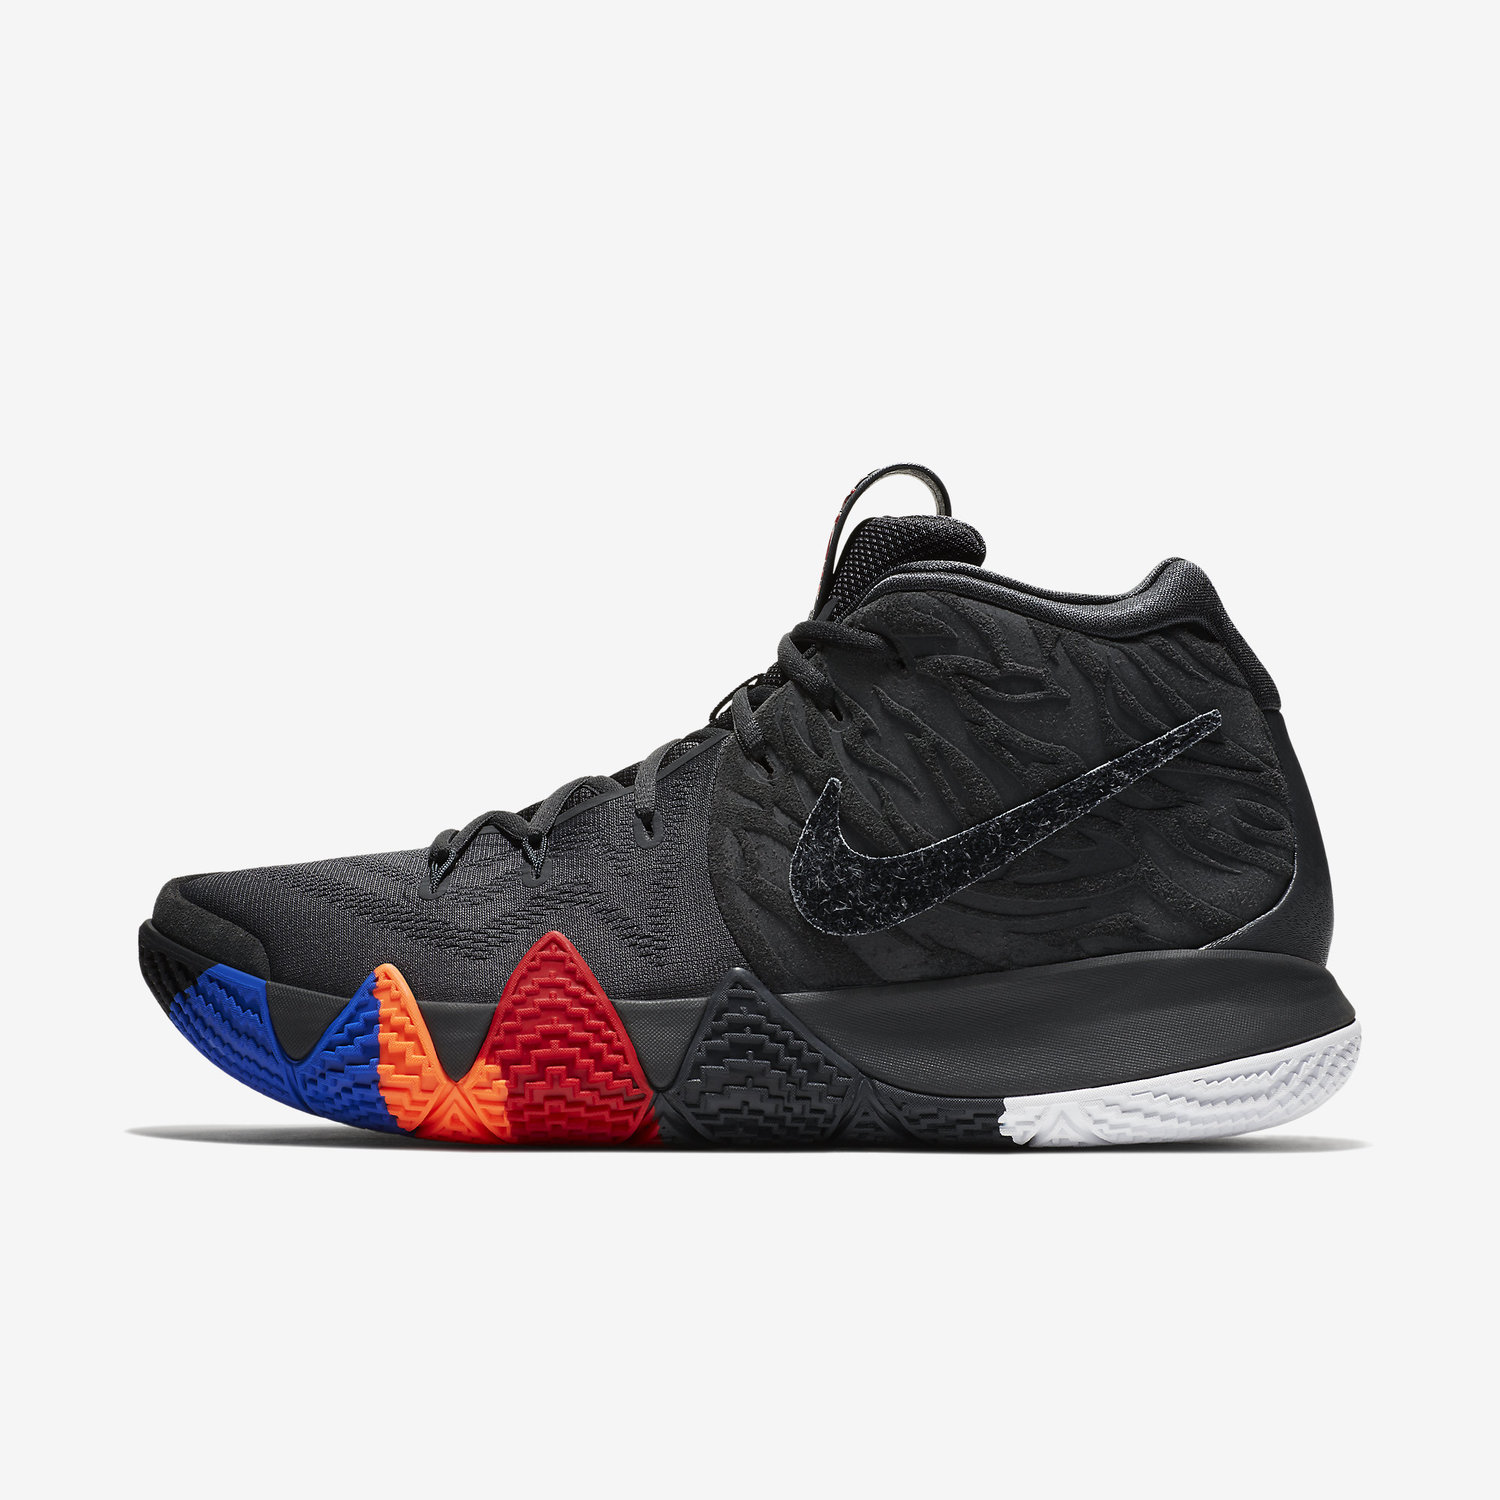 the latest f7ddd 0d317 Nike Kyrie Irving 4 Year of the Money